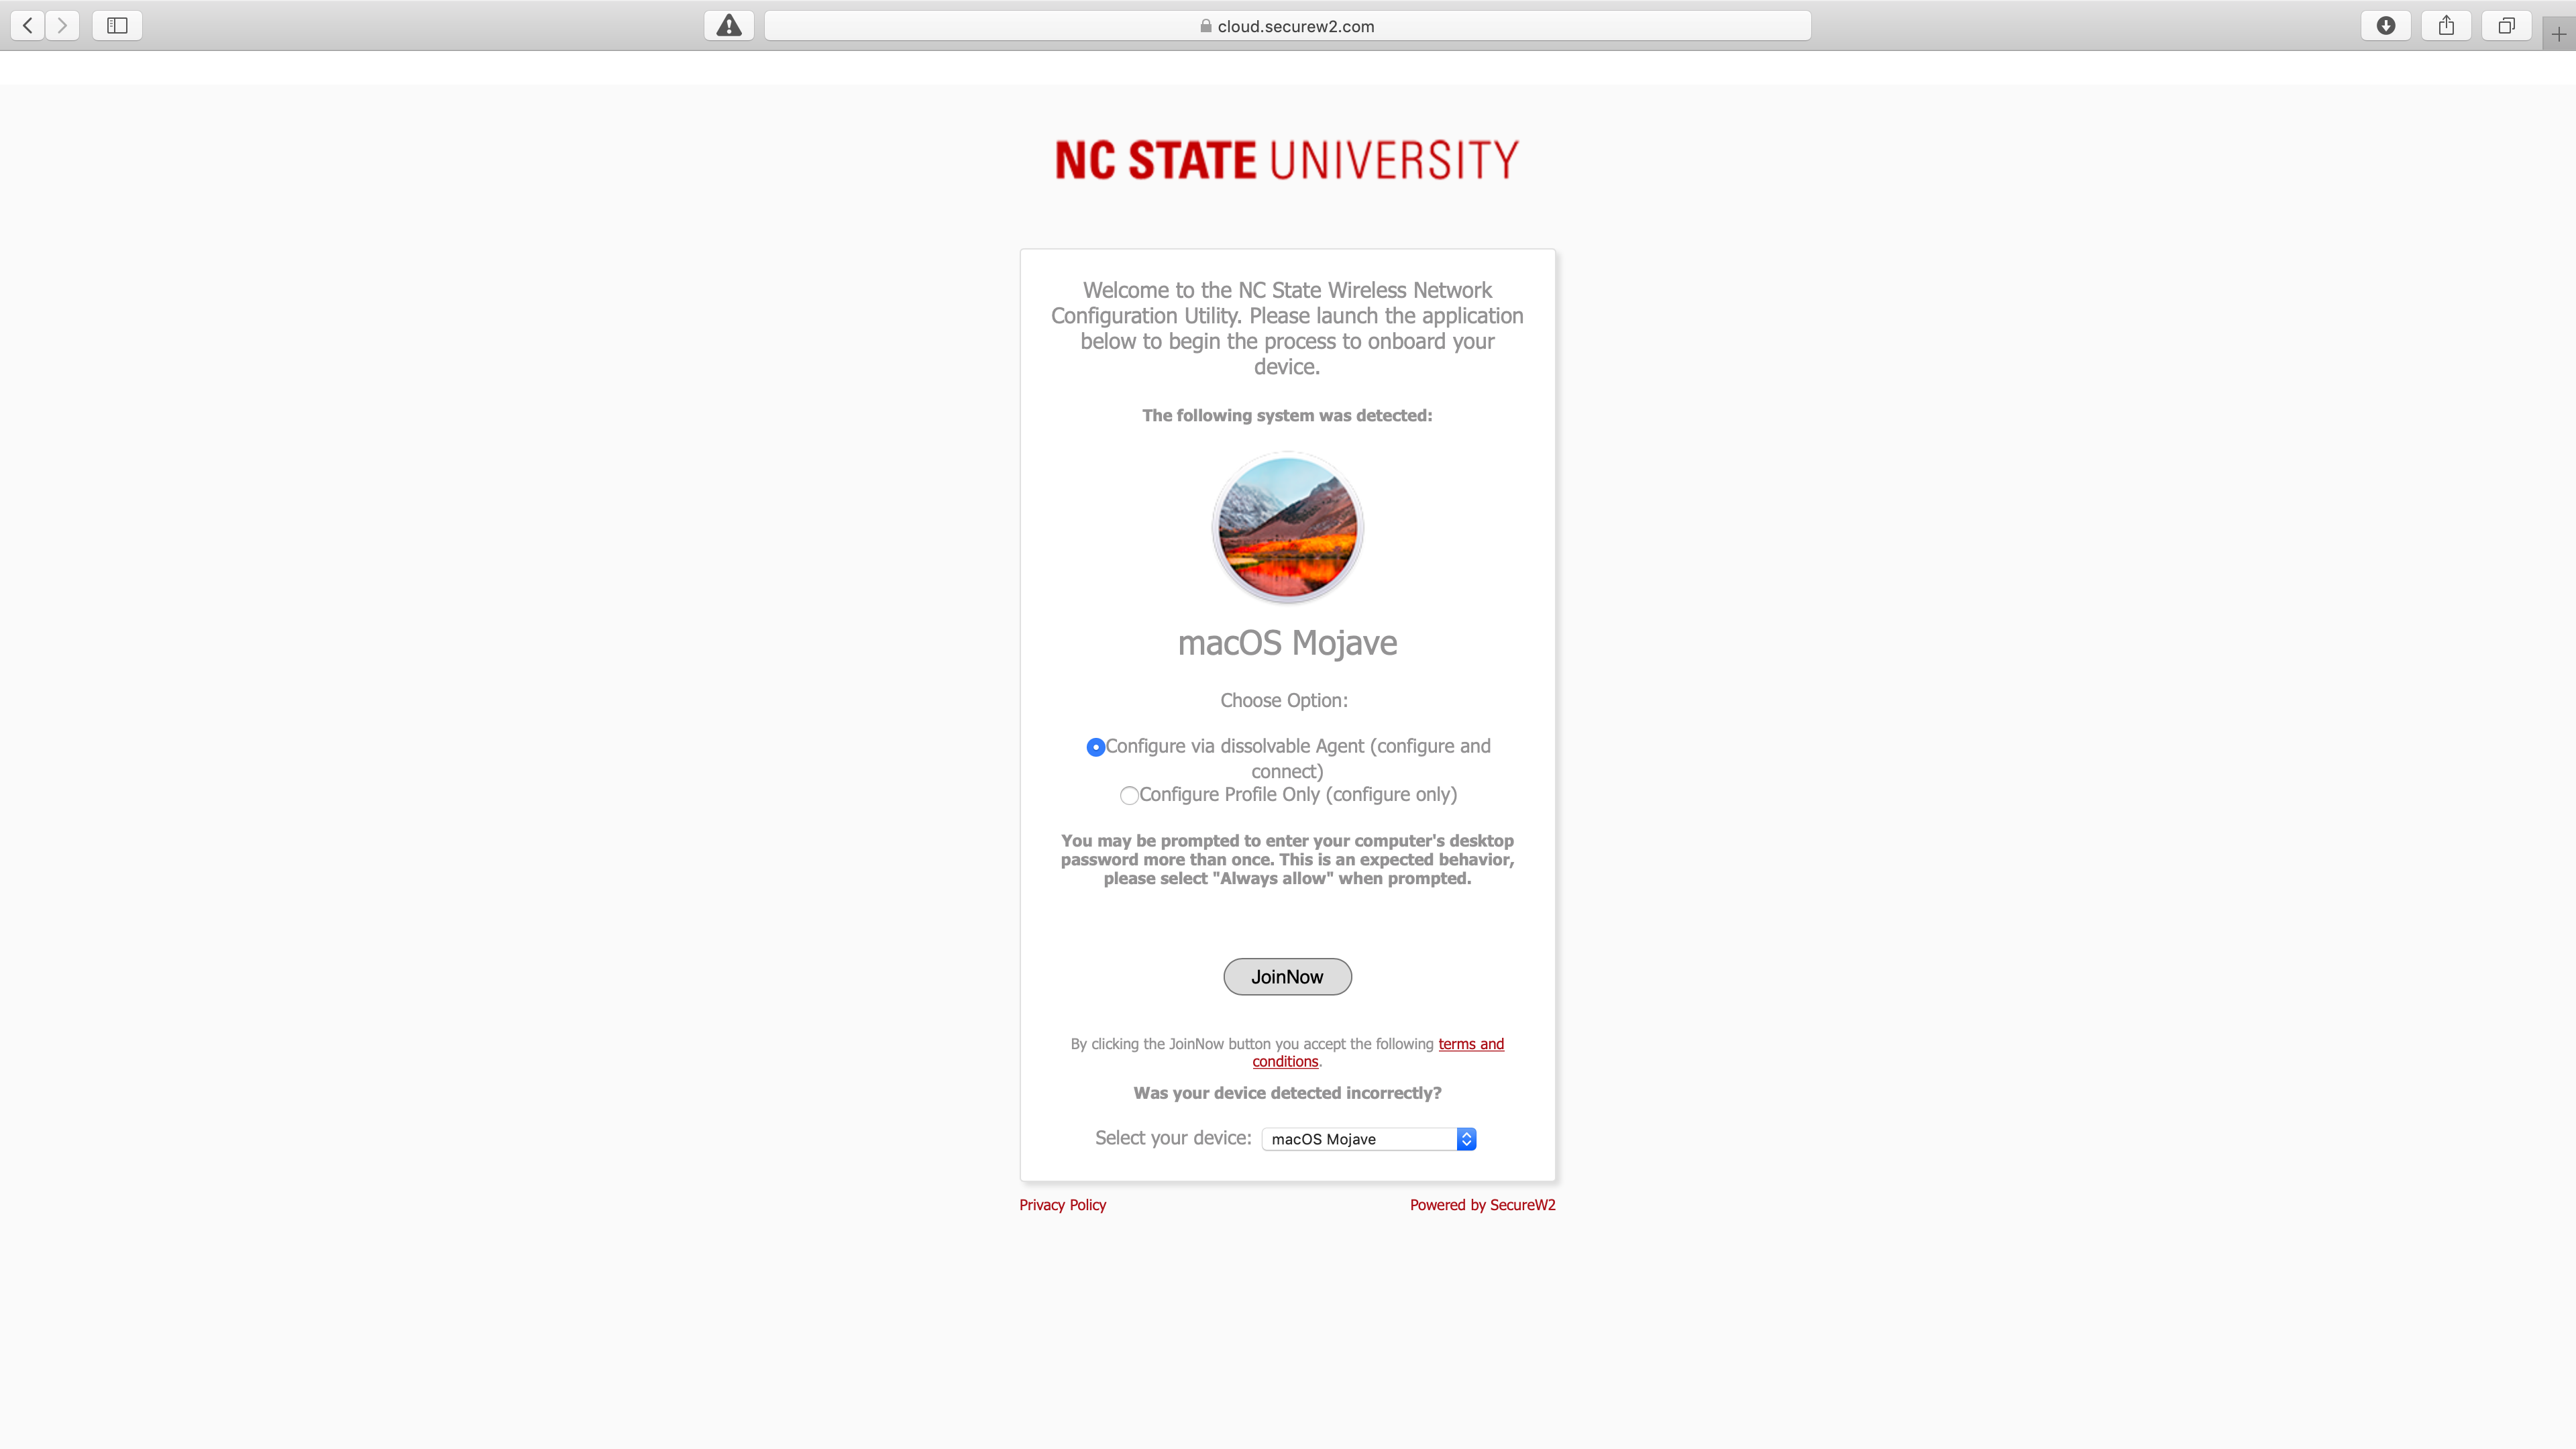 The SecureW2 eduroam enrollment page for Mac OS.